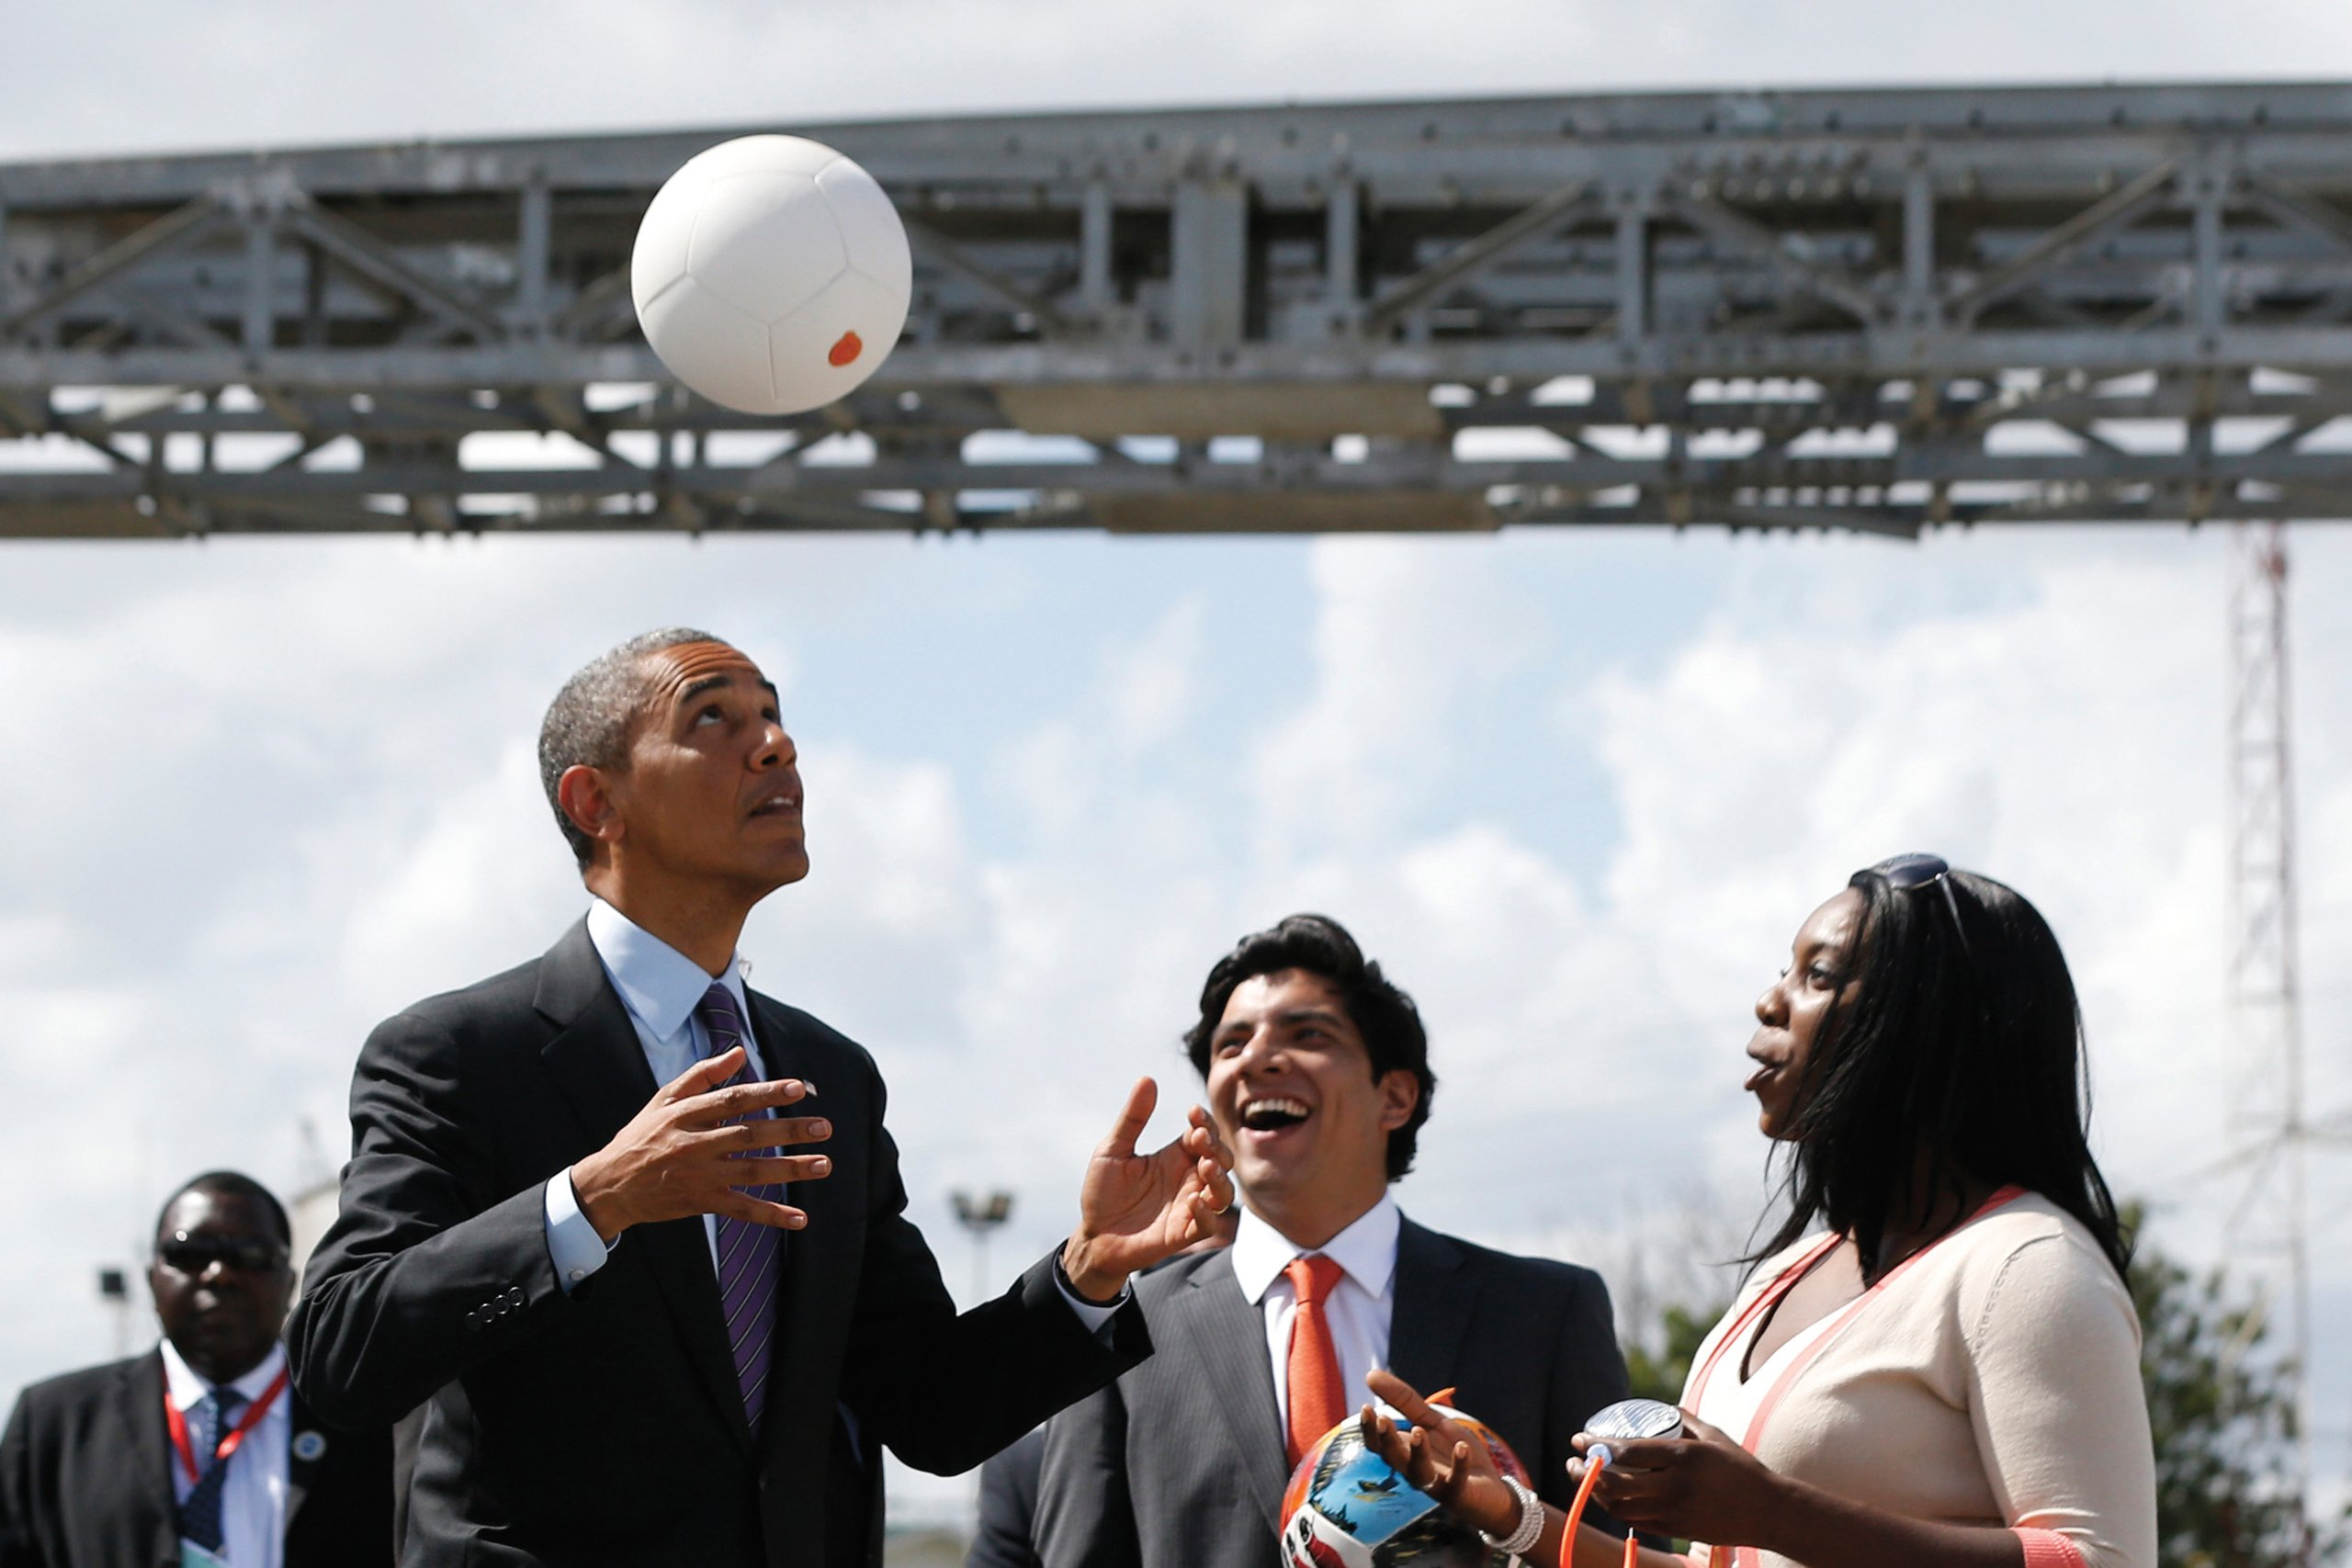 THERE'S A FOOTBALL THAT STORES ENOUGH ENERGY TO POWER APPLIANCES IN UNDERDEVELOPED AREAS!